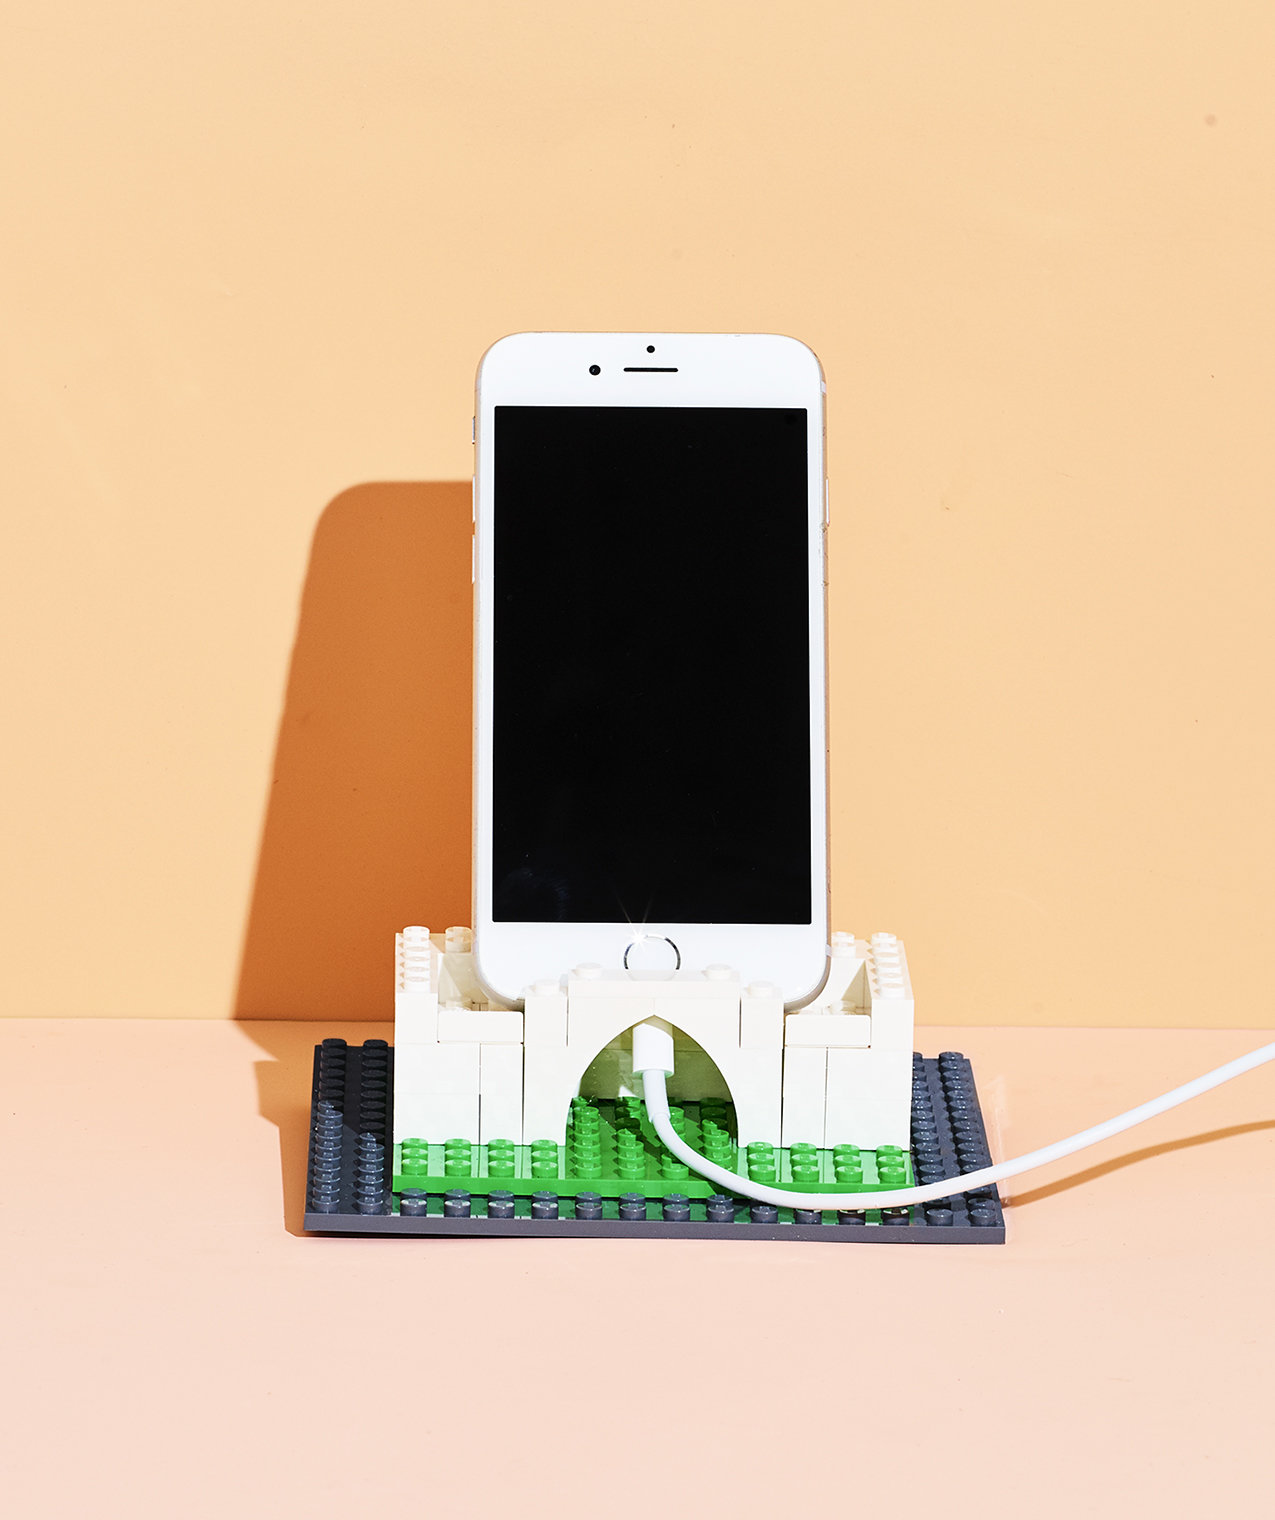 phone-charging-station-lego-bricks